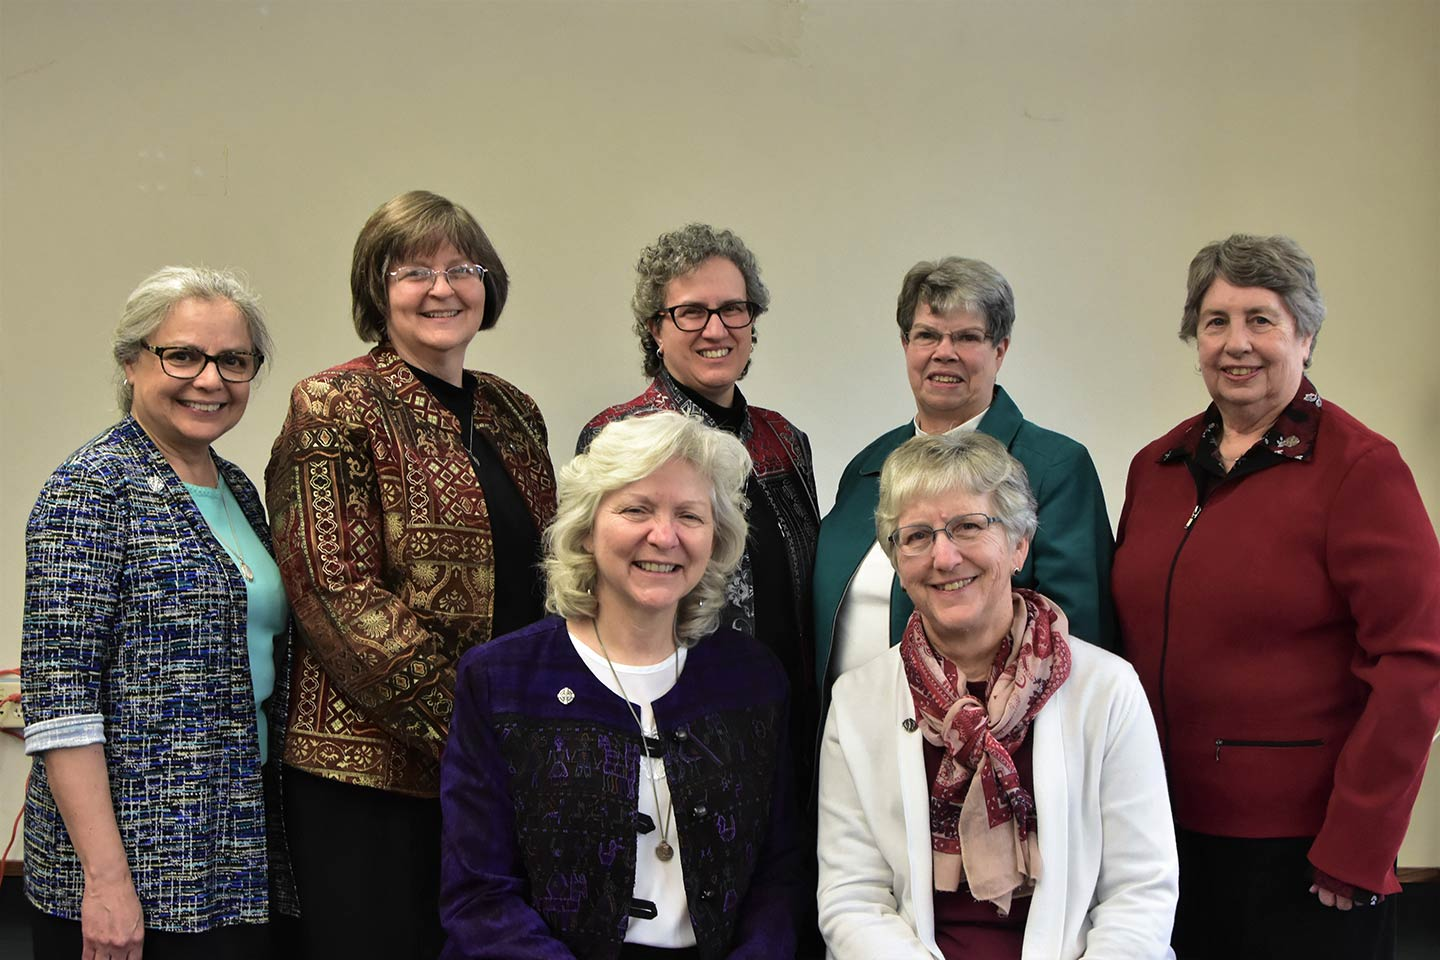 Newly Elected Central Pacific Province Provincial Council. Front row (l-r): Sisters Anna Marie Reha (Vicar) and Helen Jane Jaeb.<br>Back row (l-r): Sisters Christine Garcia, Mary Kay Brooks, Debra Marie Sciano (Provincial Leader), Dawn Achs, and Lynne Schmidt.